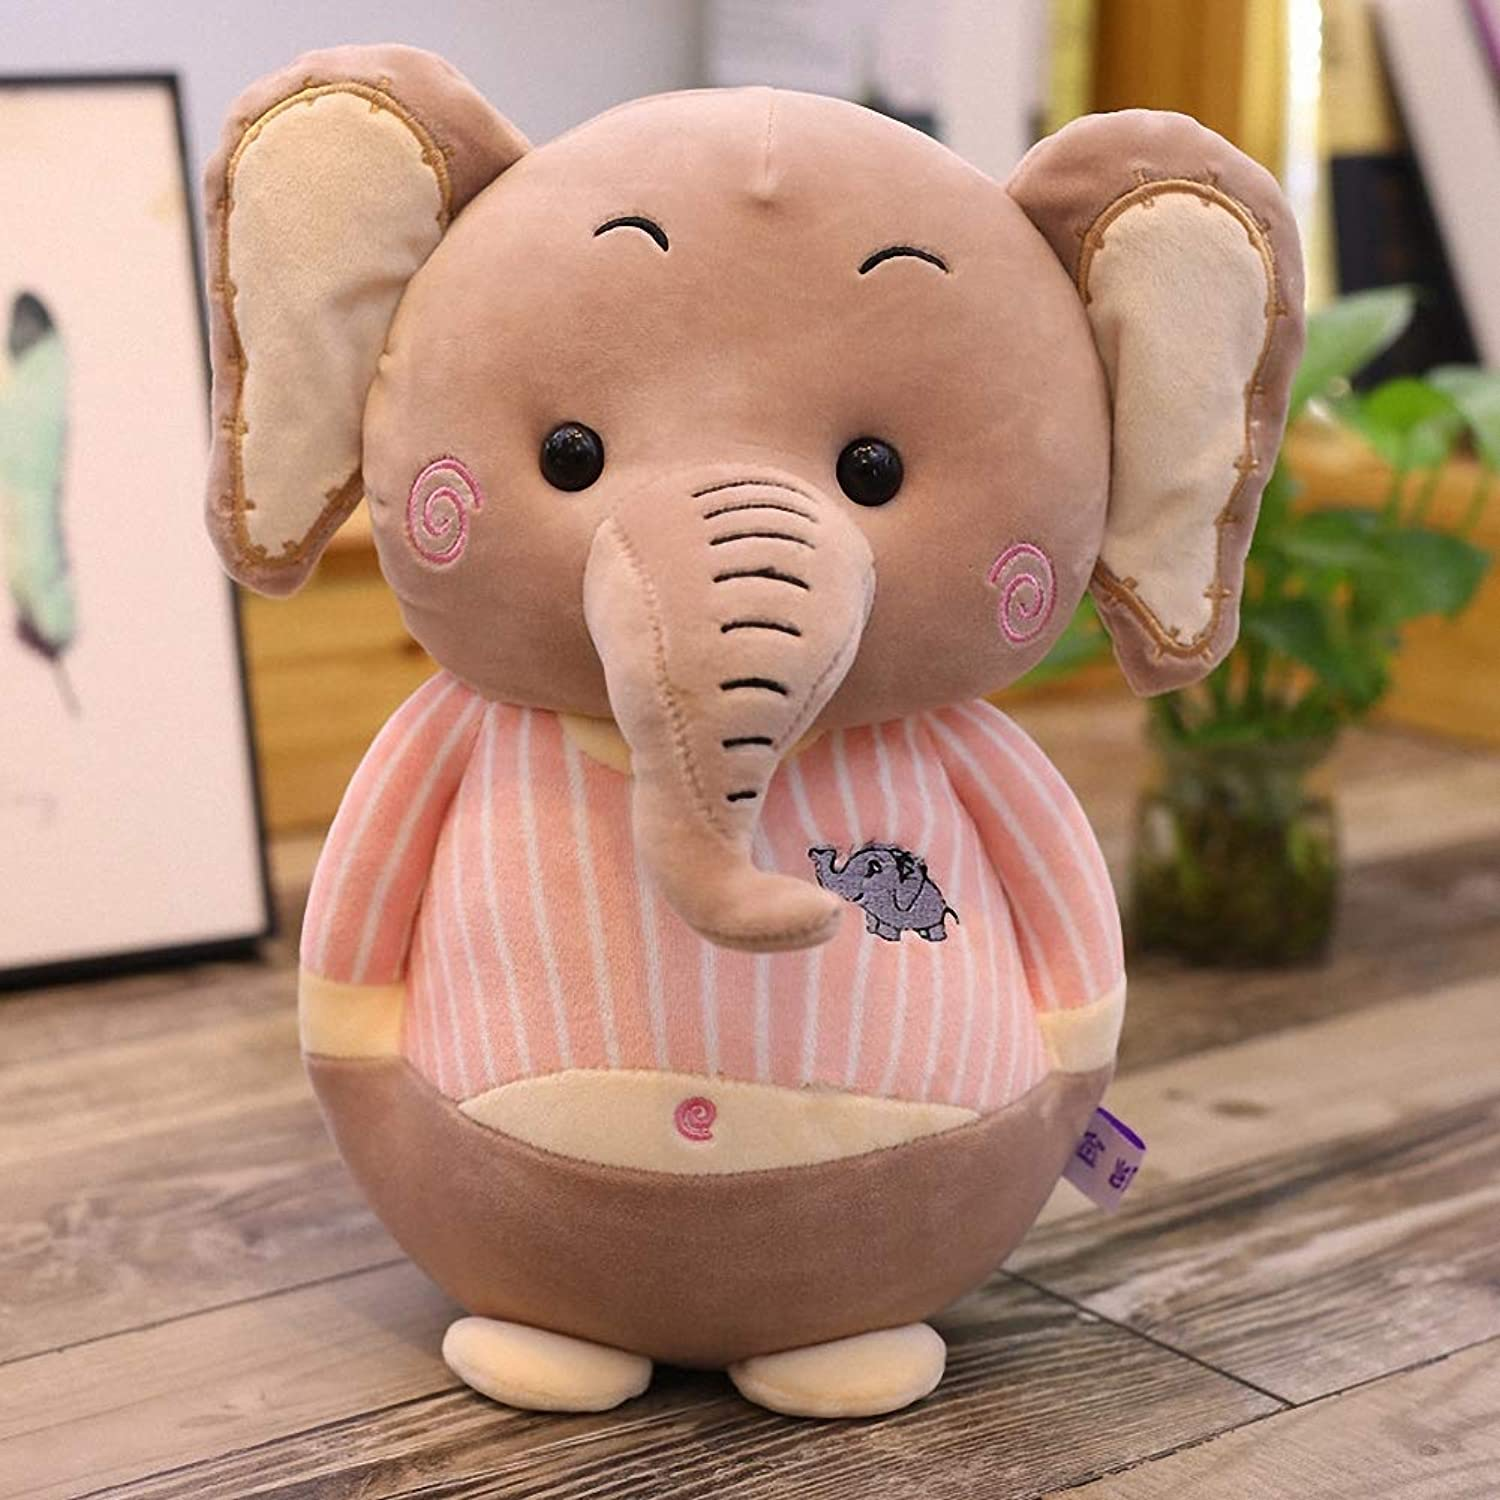 Elephant Plush Toy, Gift for Girlfriend, Kids,Pink,55cm